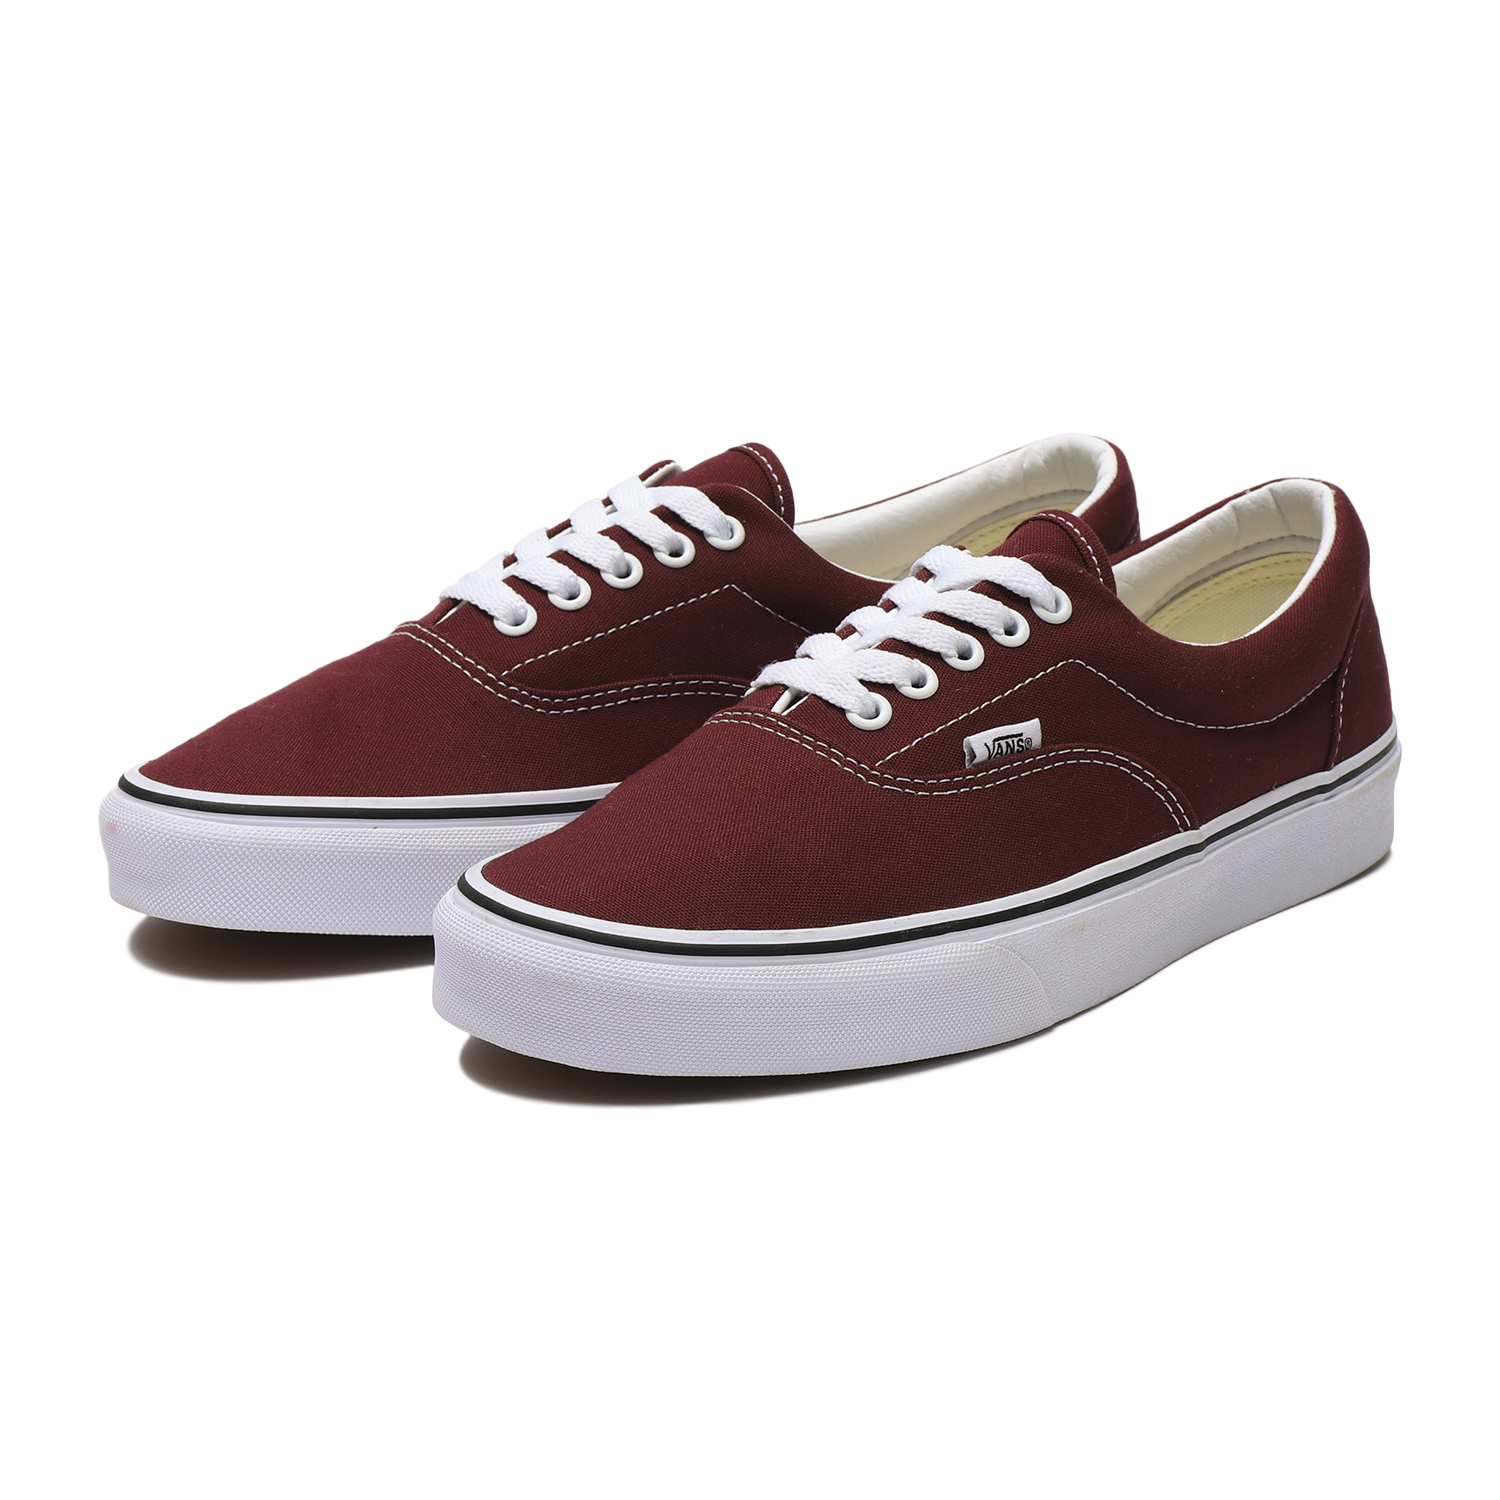 Free delivery - vans deck shoes - OFF71